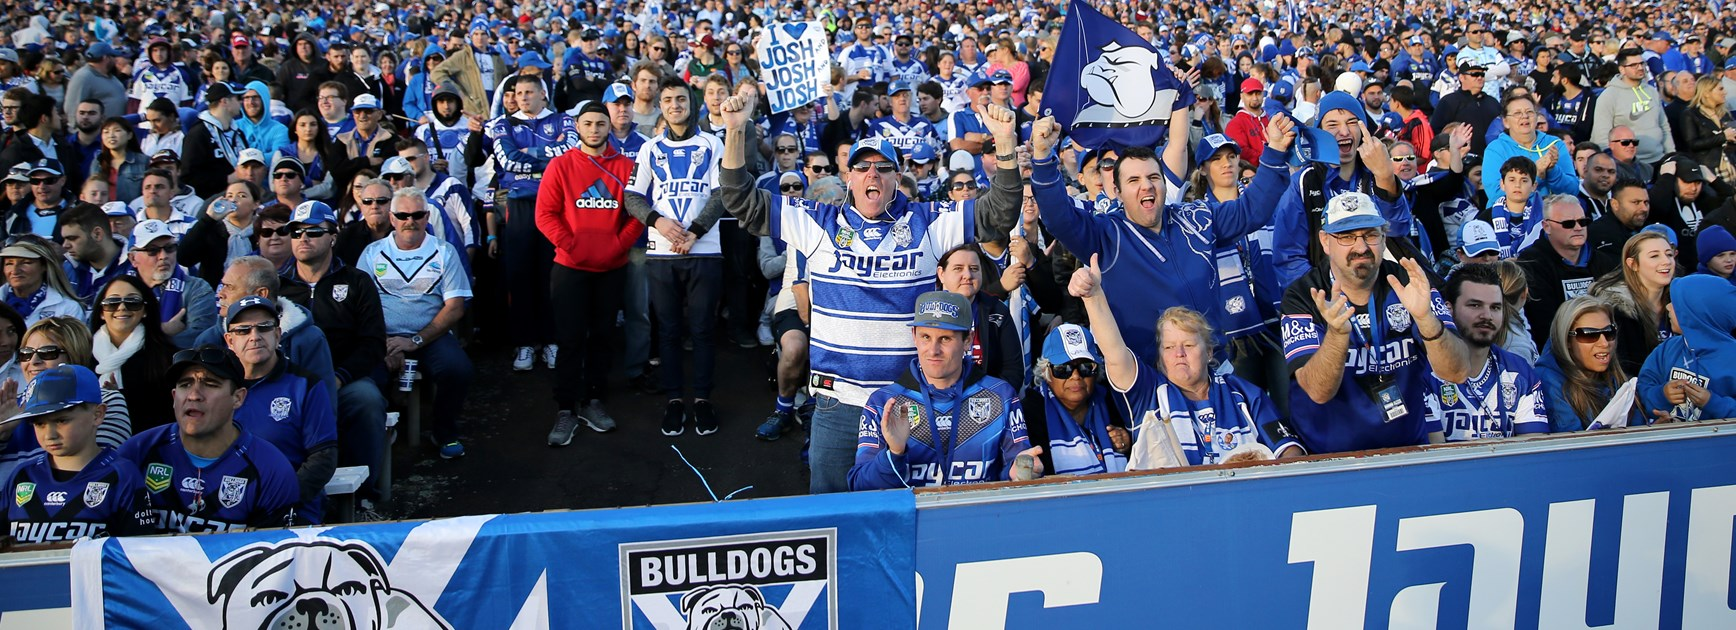 Canterbury fans show their passion at Belmore.